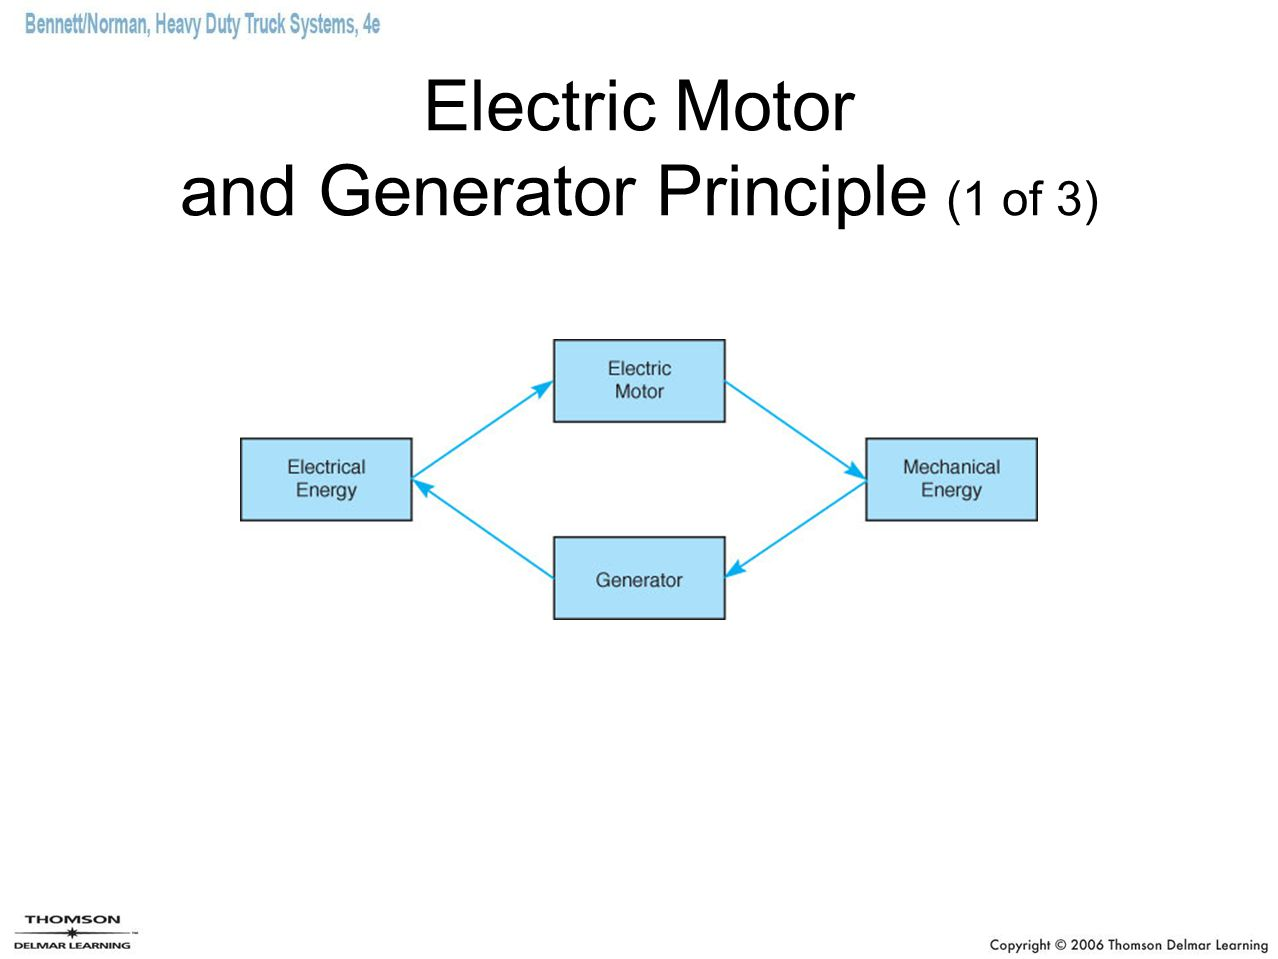 Electric Motor and Generator Principle (1 of 3)